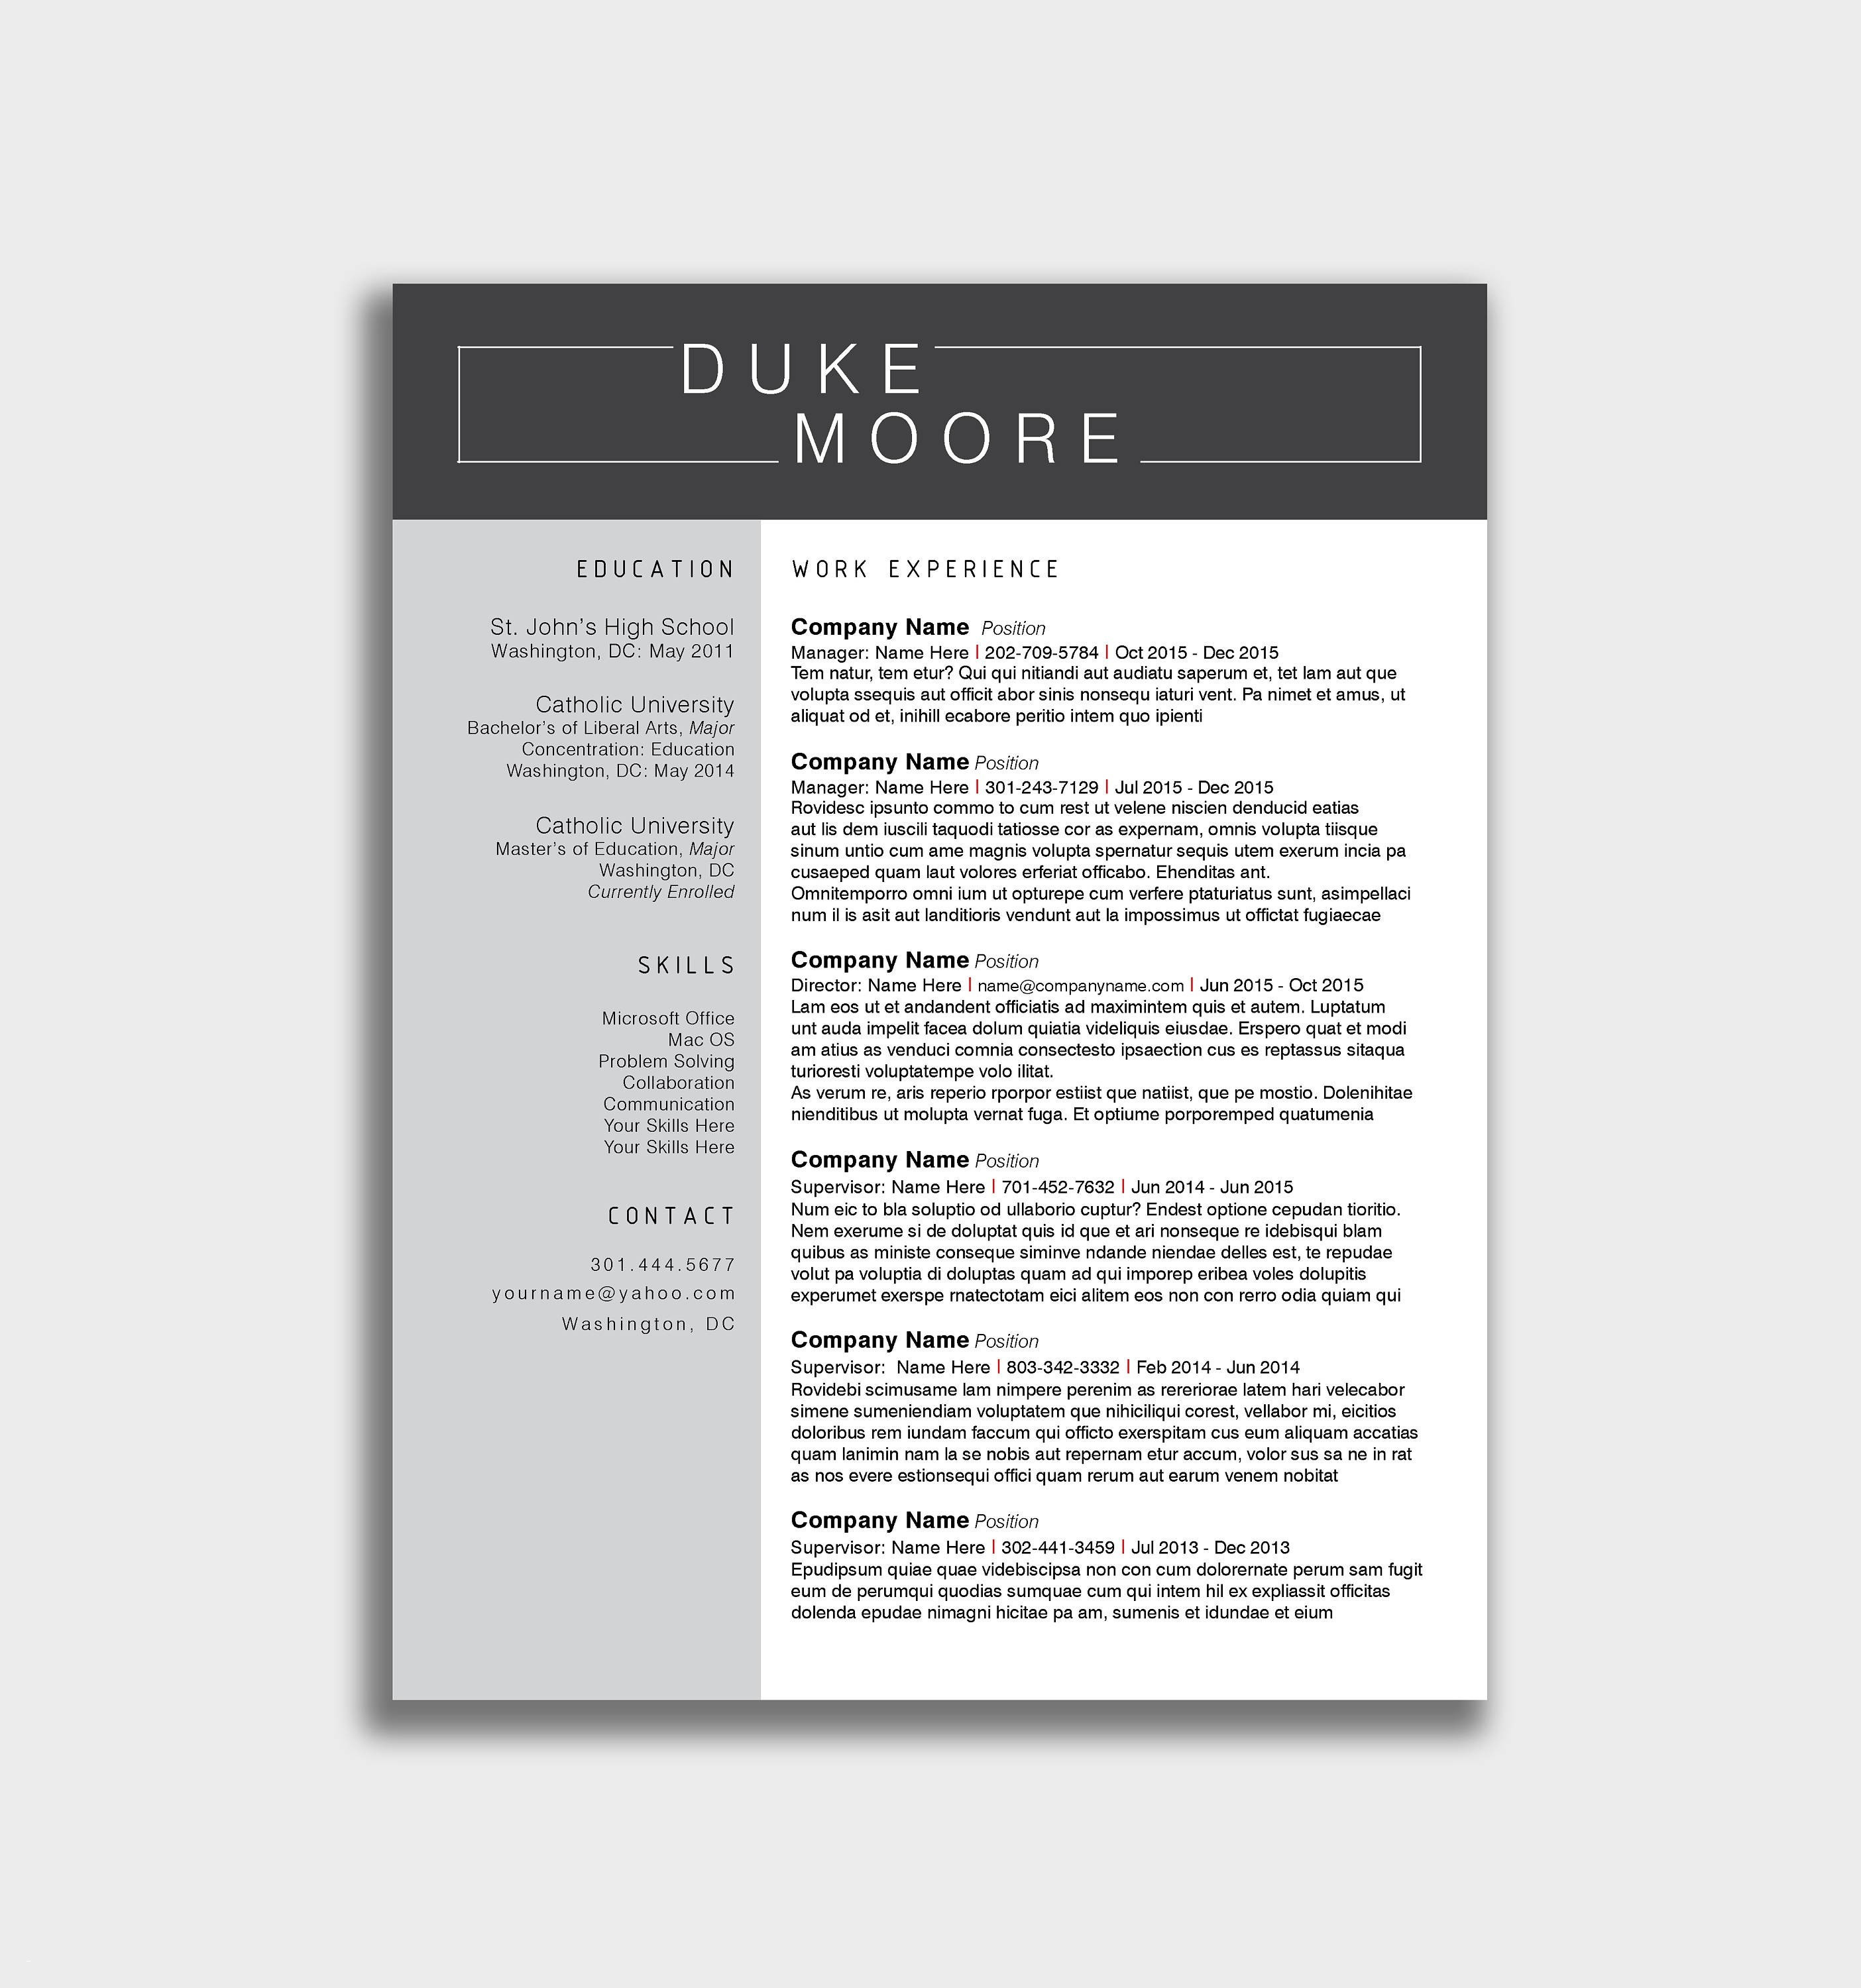 Ut Austin Resume Template - 52 Loveable Resume Templates for College Students Occupylondonsos